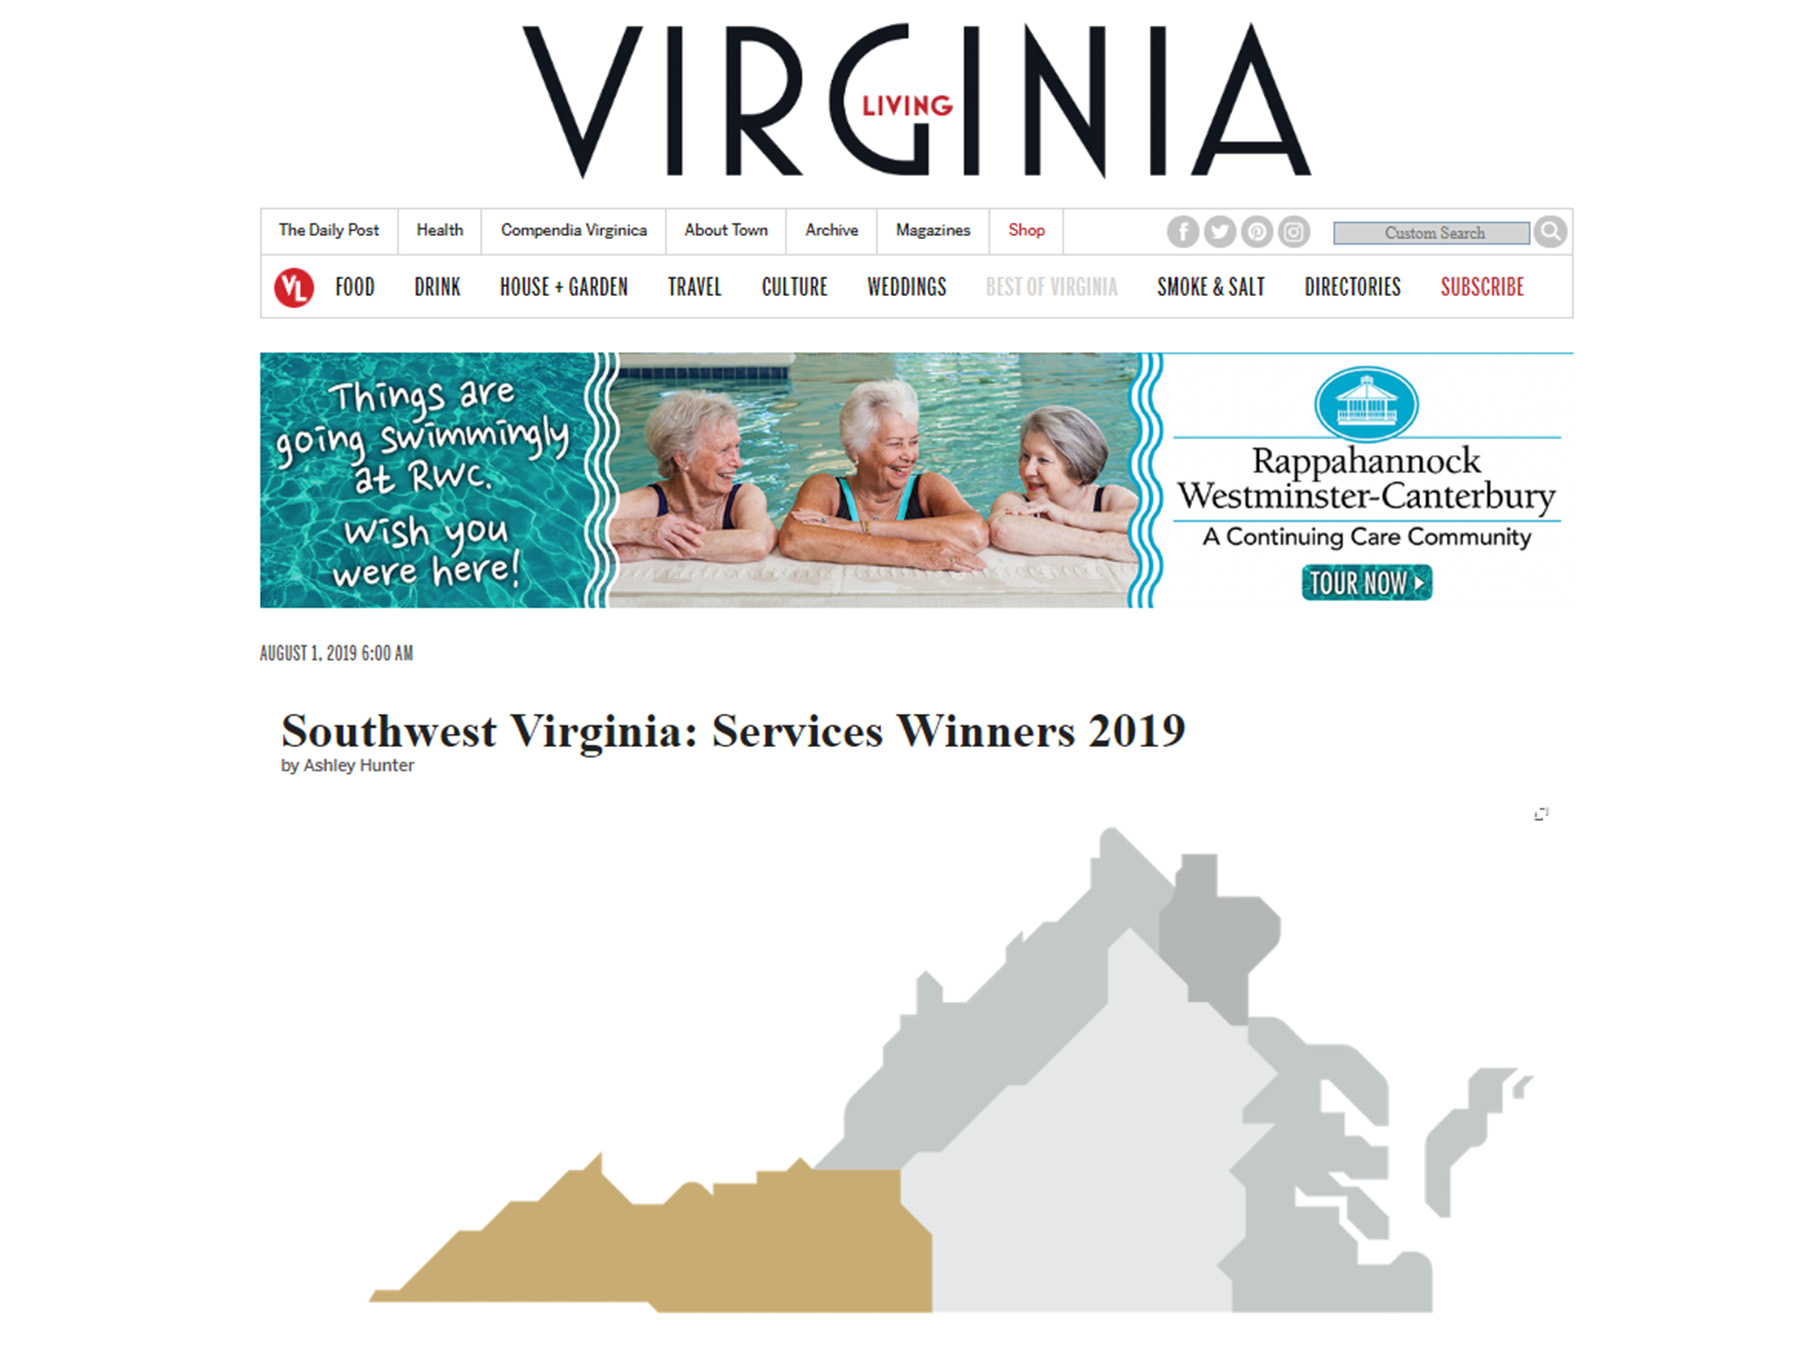 Virginia Living Services 2019